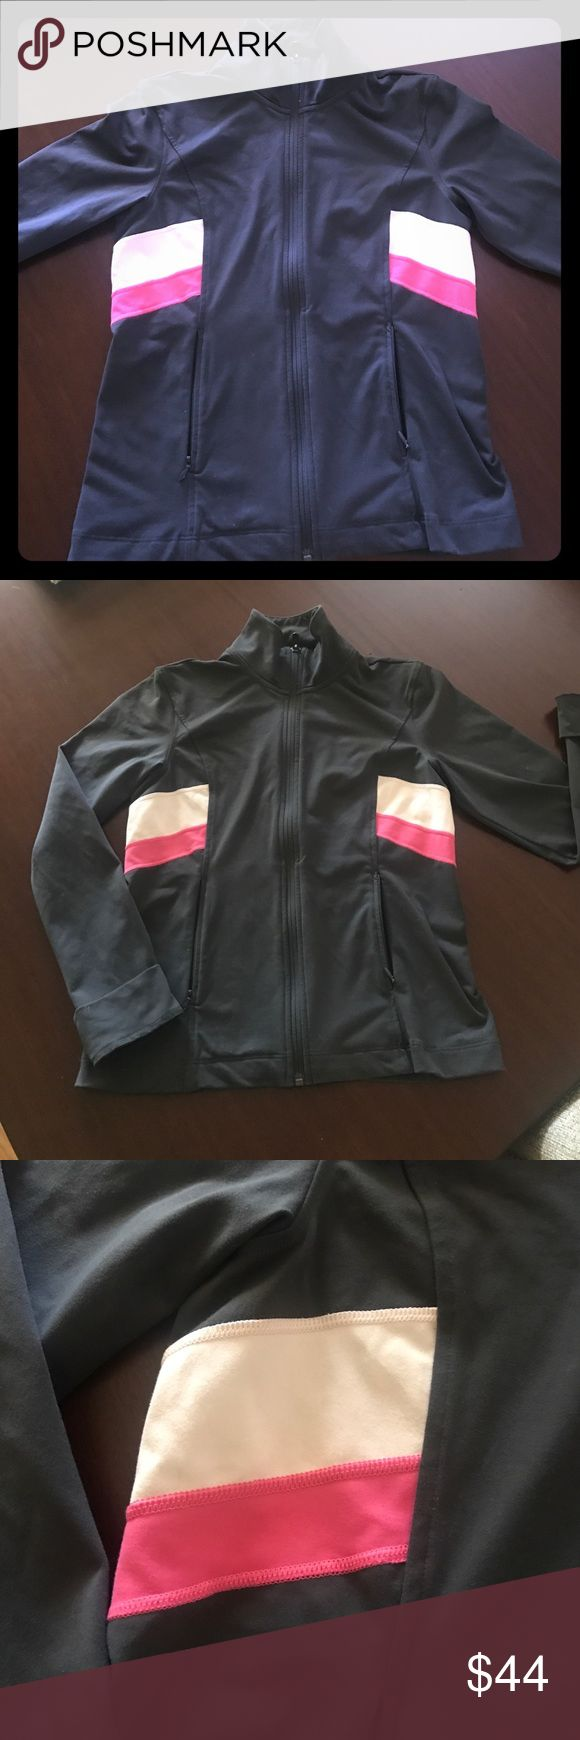 ⭐️ Victoria's Secret body jacket Like new worn one time Victoria's Secret athletic jacket.  Great condition, gray with light and dark pink stripes Victoria's Secret Jackets & Coats